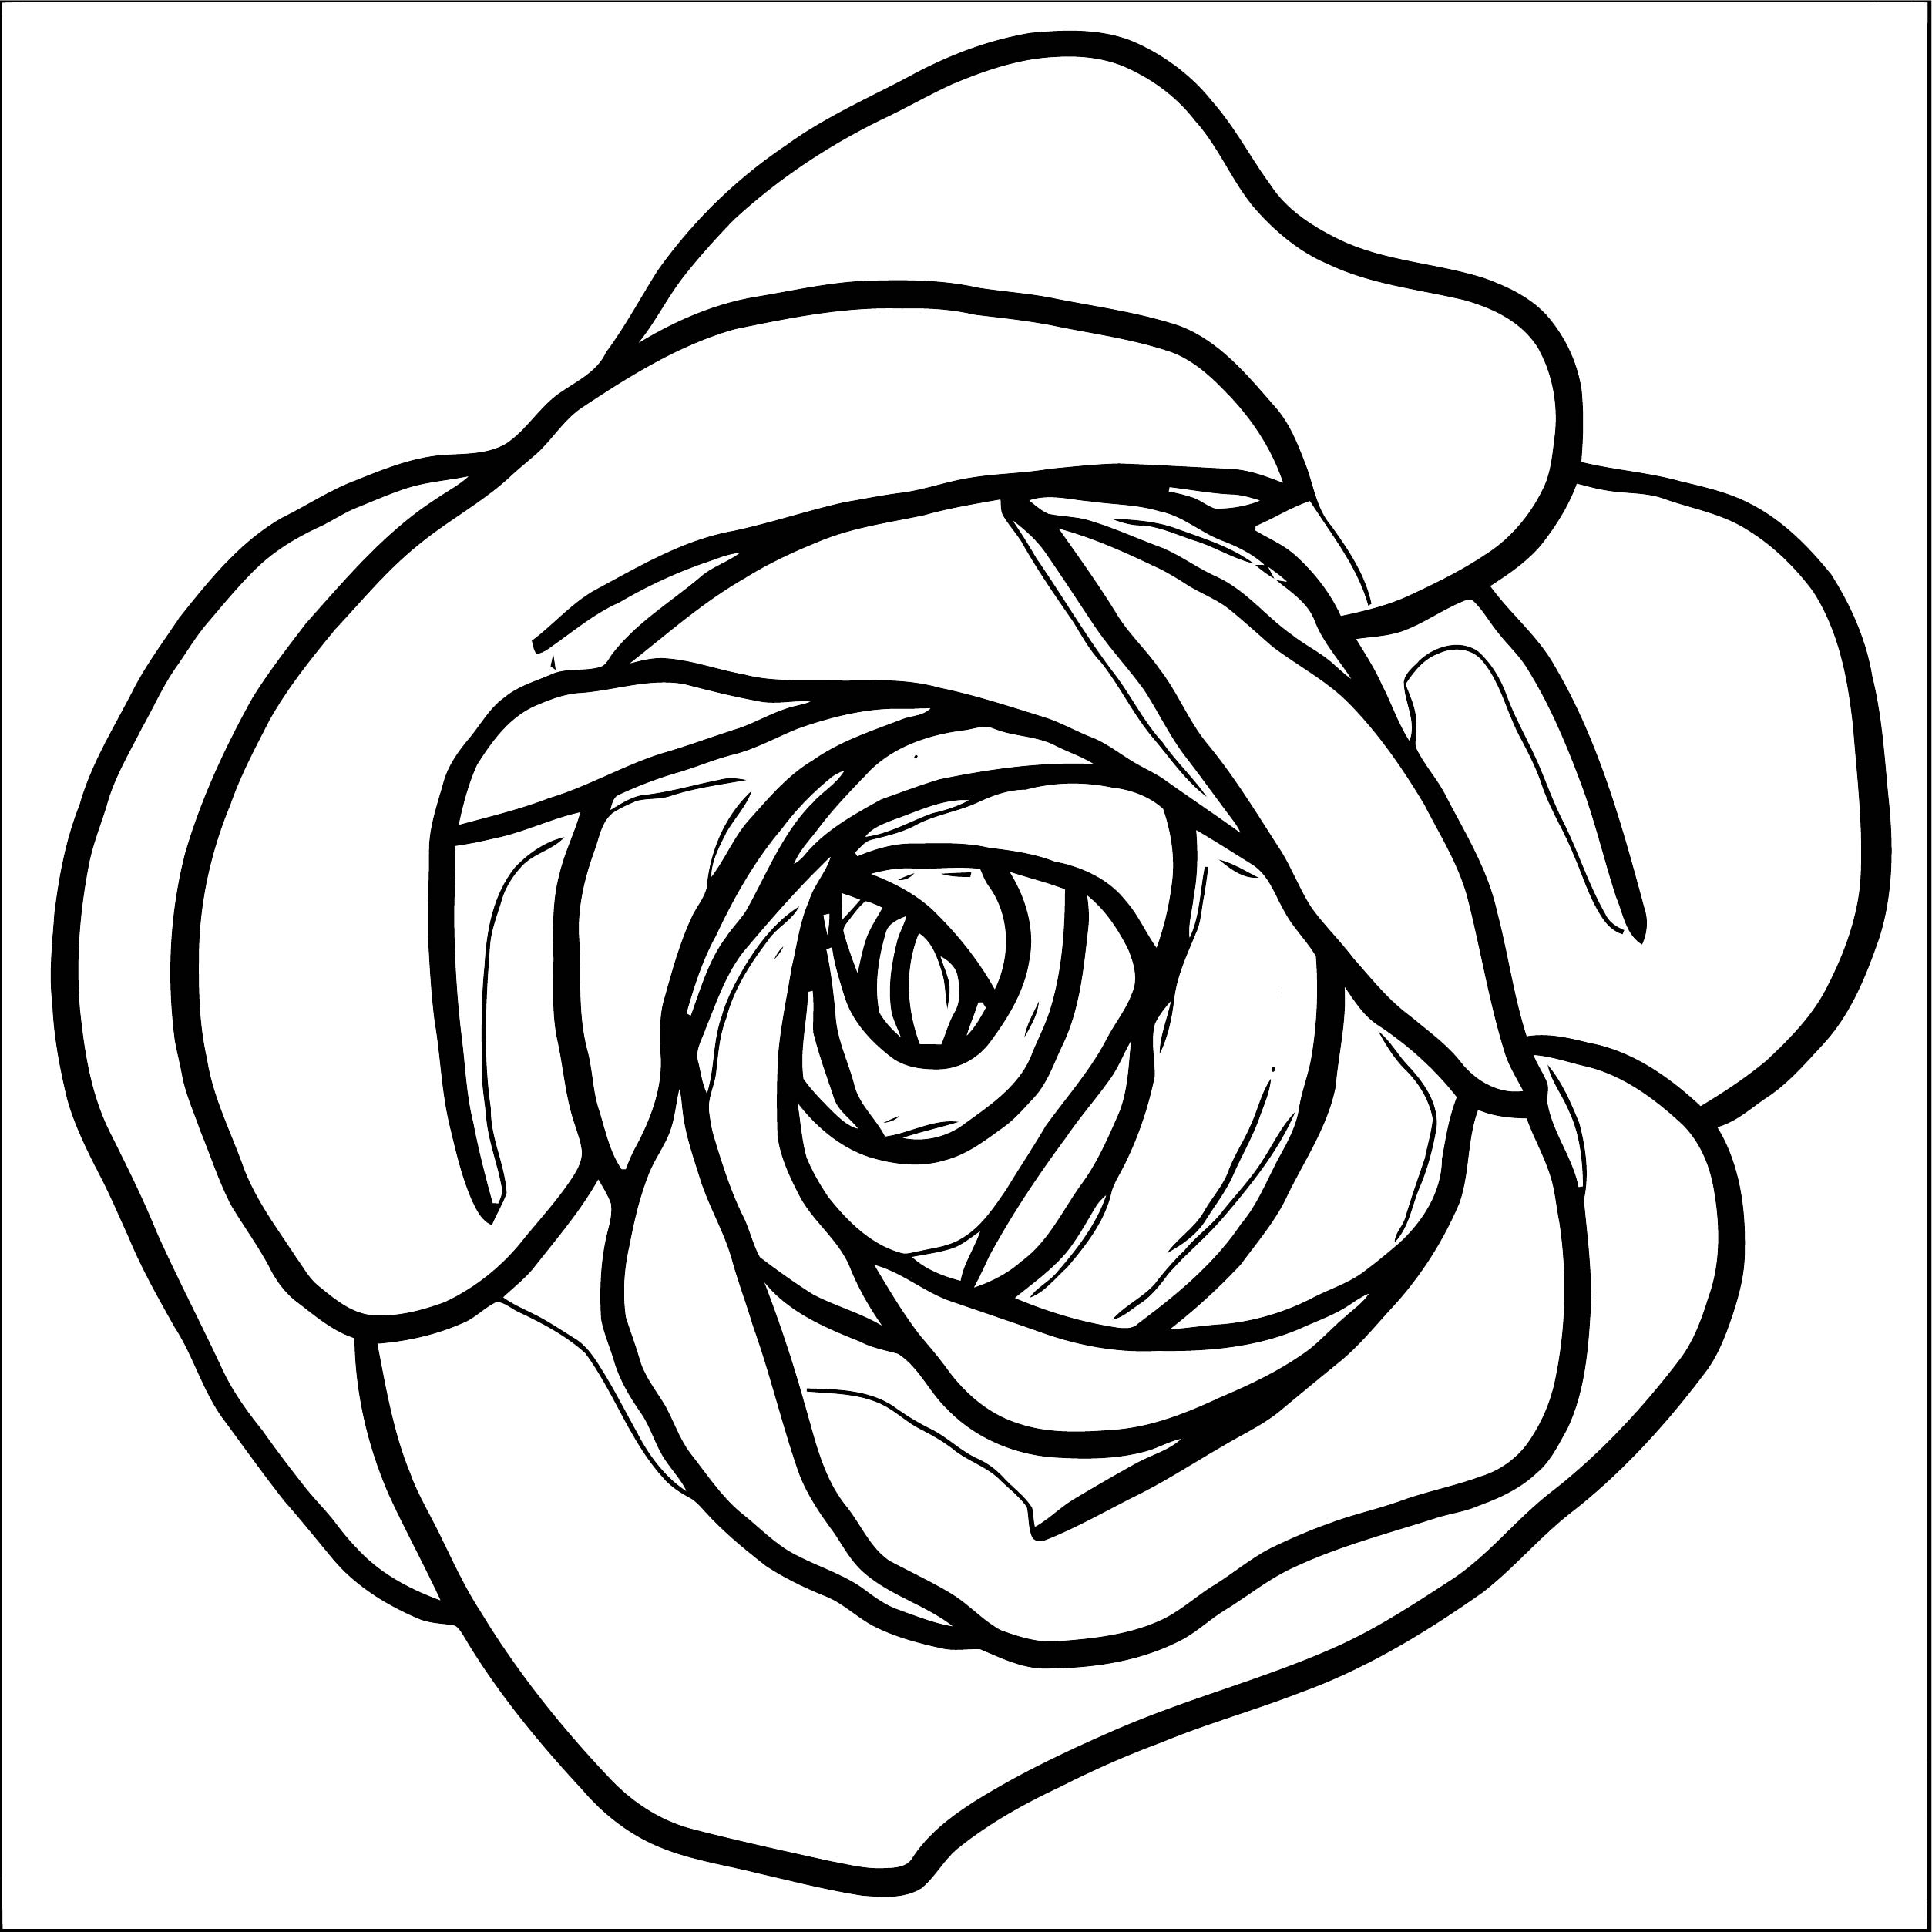 Rose Flower Coloring Page 082